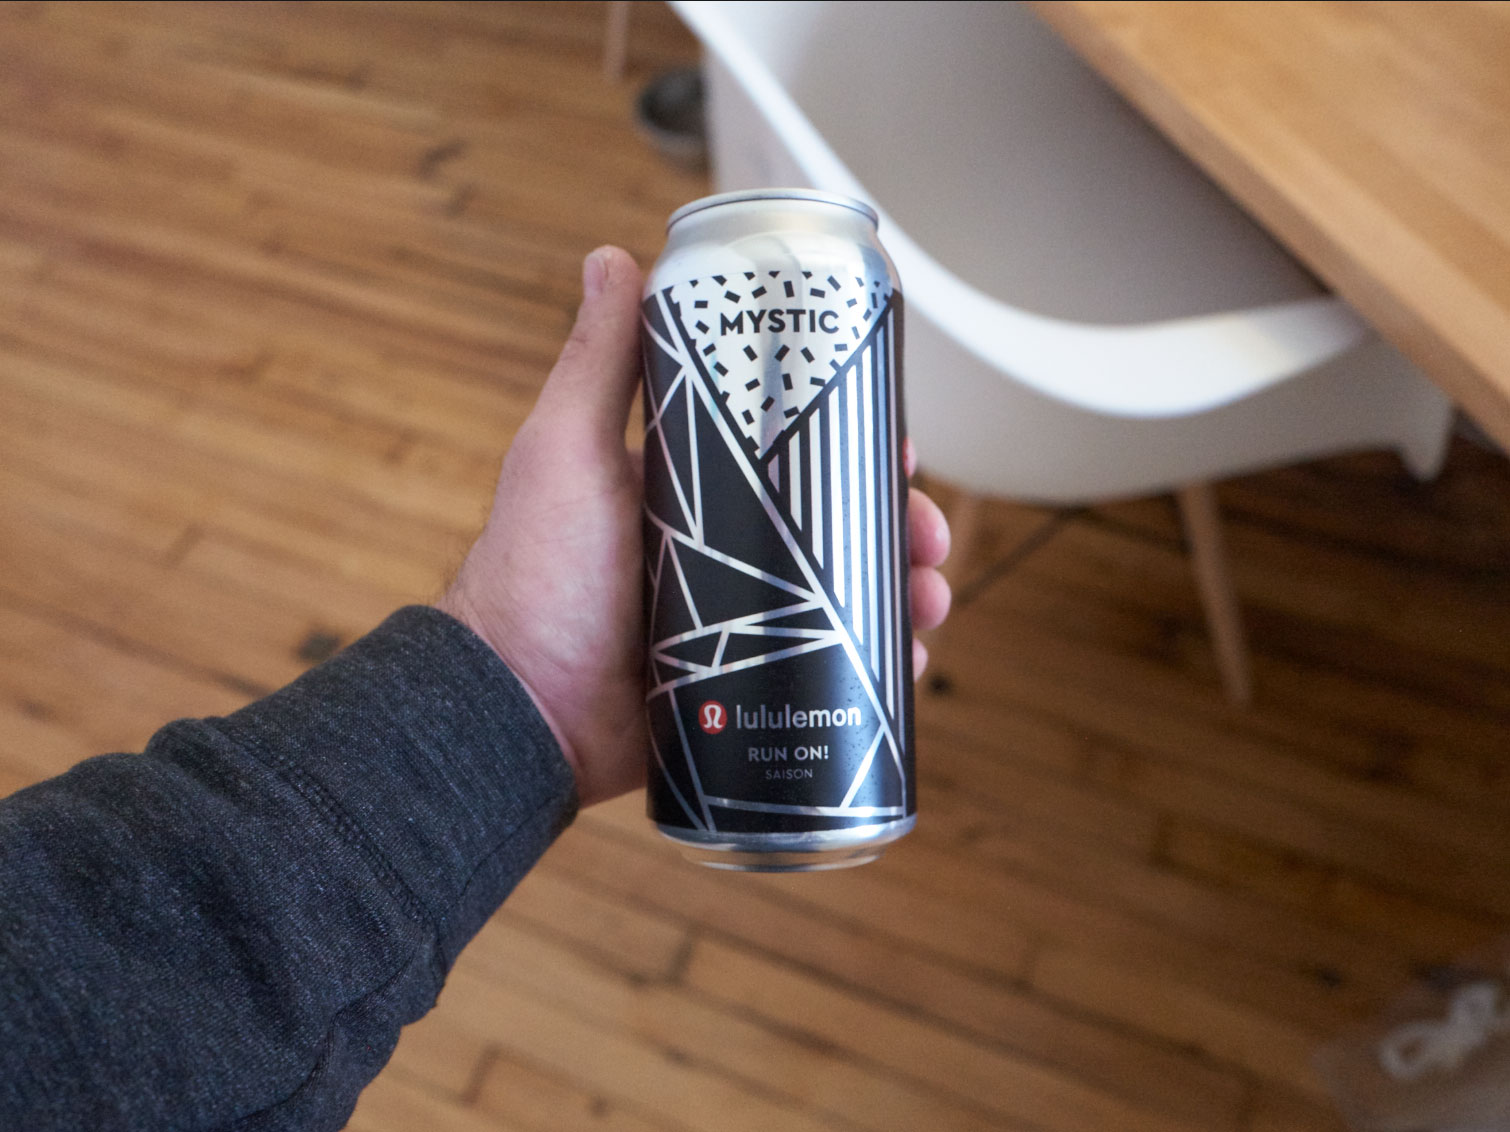 Lululemon Made a Beer Just for Boston Marathon Runners